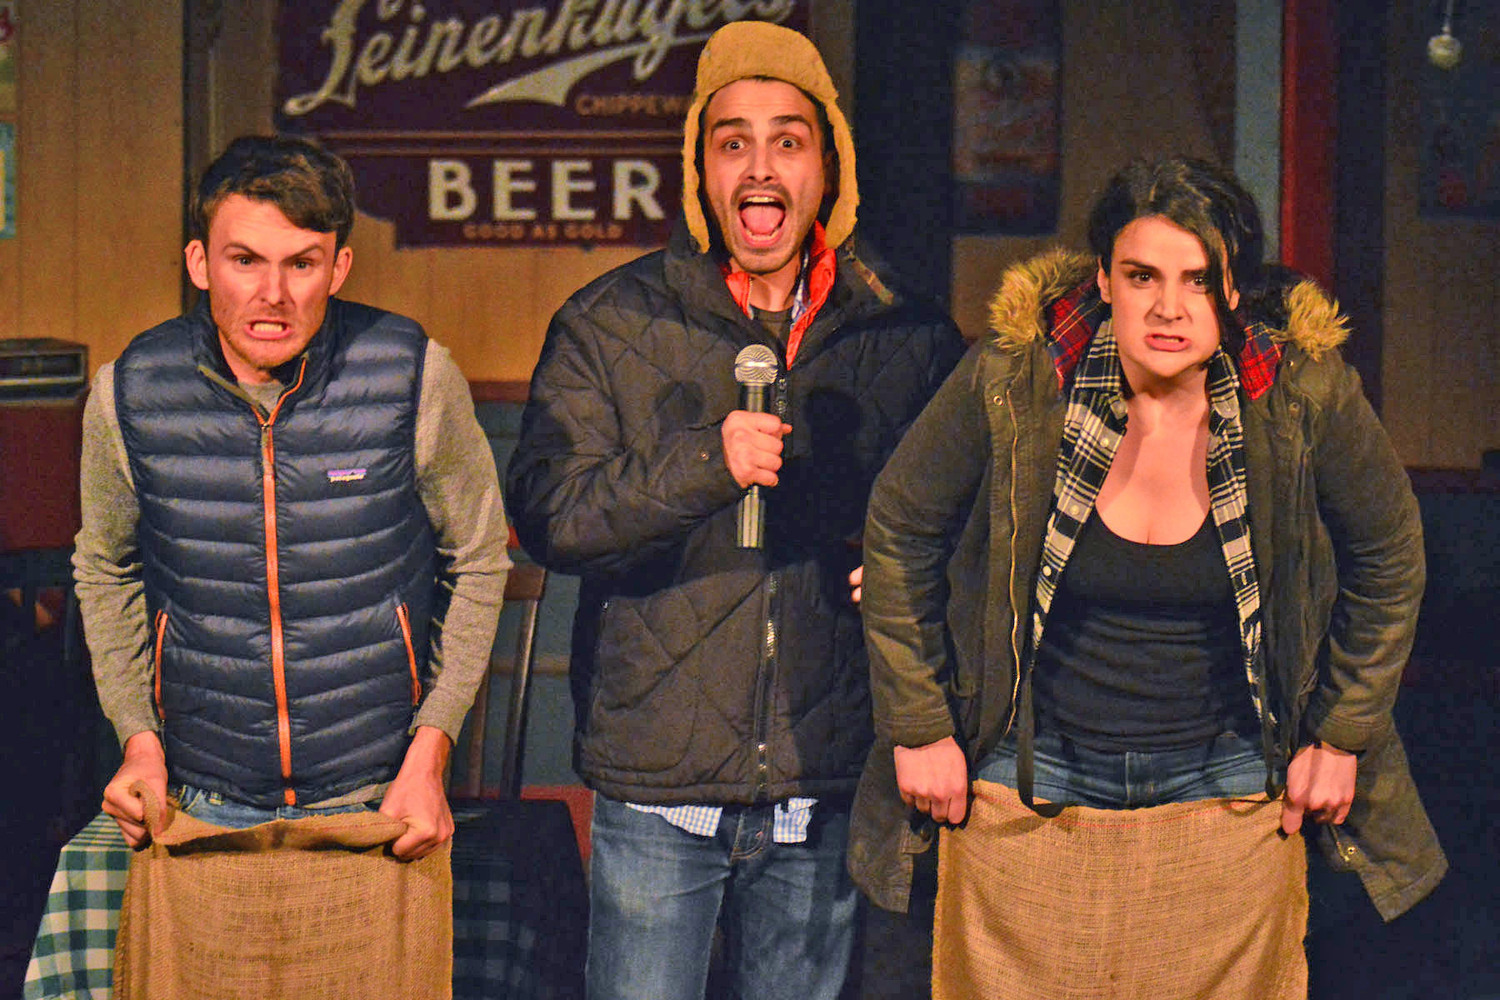 BWW Review: DON'T HUG ME, WE'RE FAMILY Has World Premiere in North Hollywood